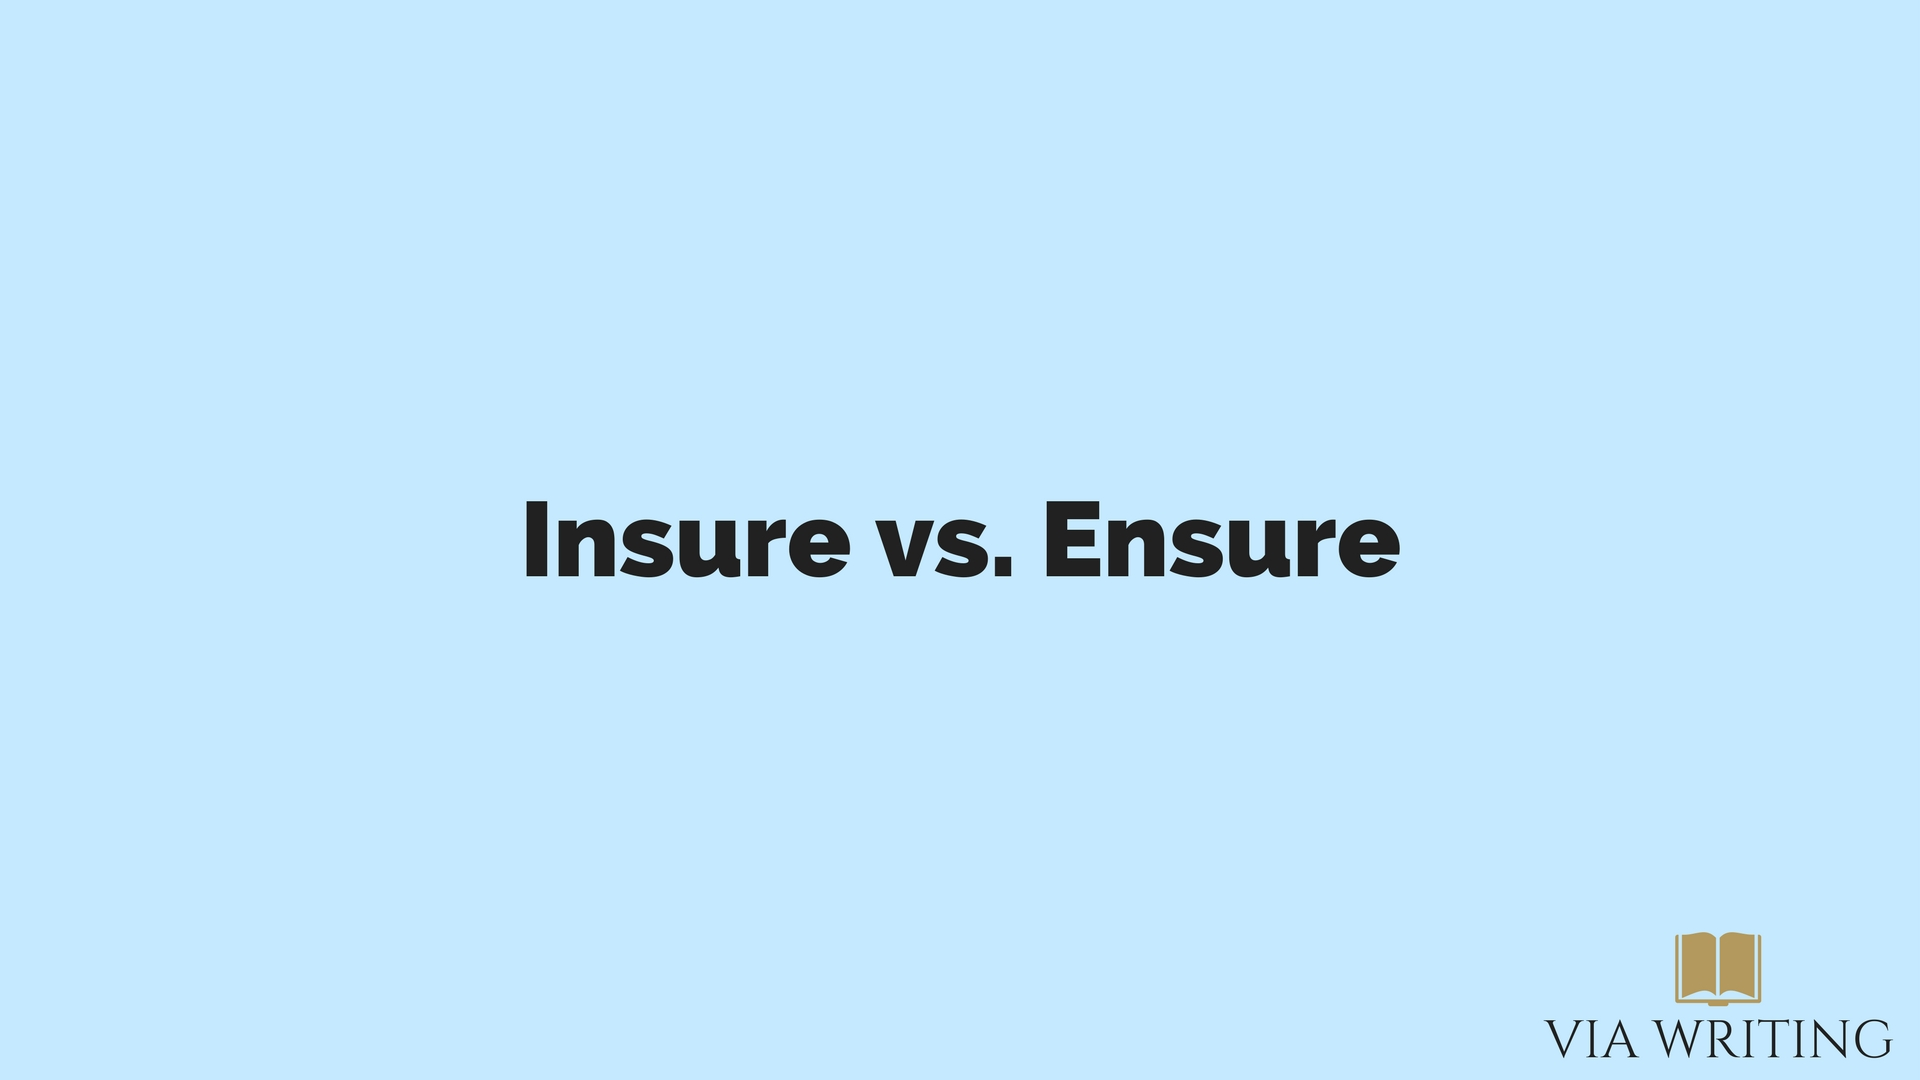 Insure vs. Ensure